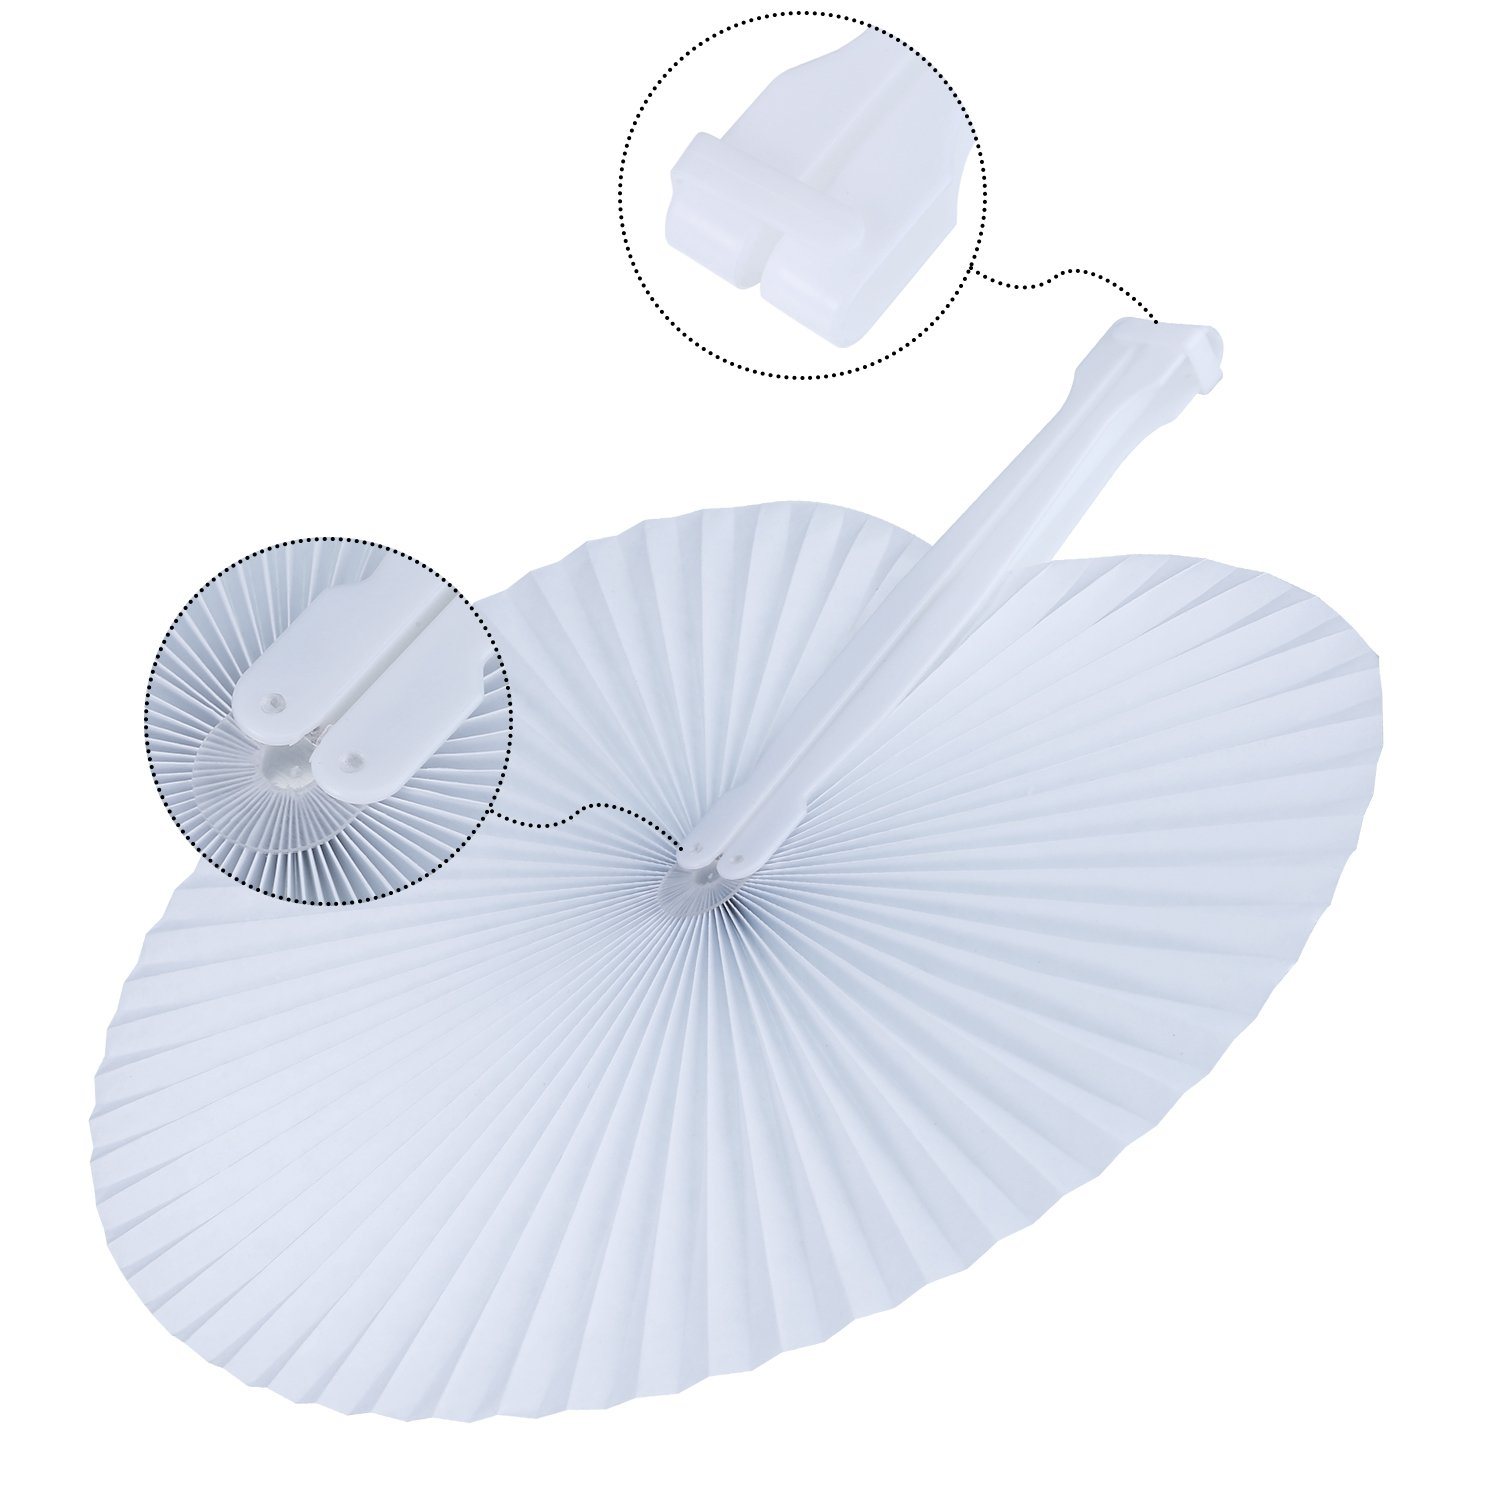 Pangda 24 Pieces Round Folding Handheld Paper Fans Accordion Fans Assortment for Party Wedding Favor Birthday Supplies Pink